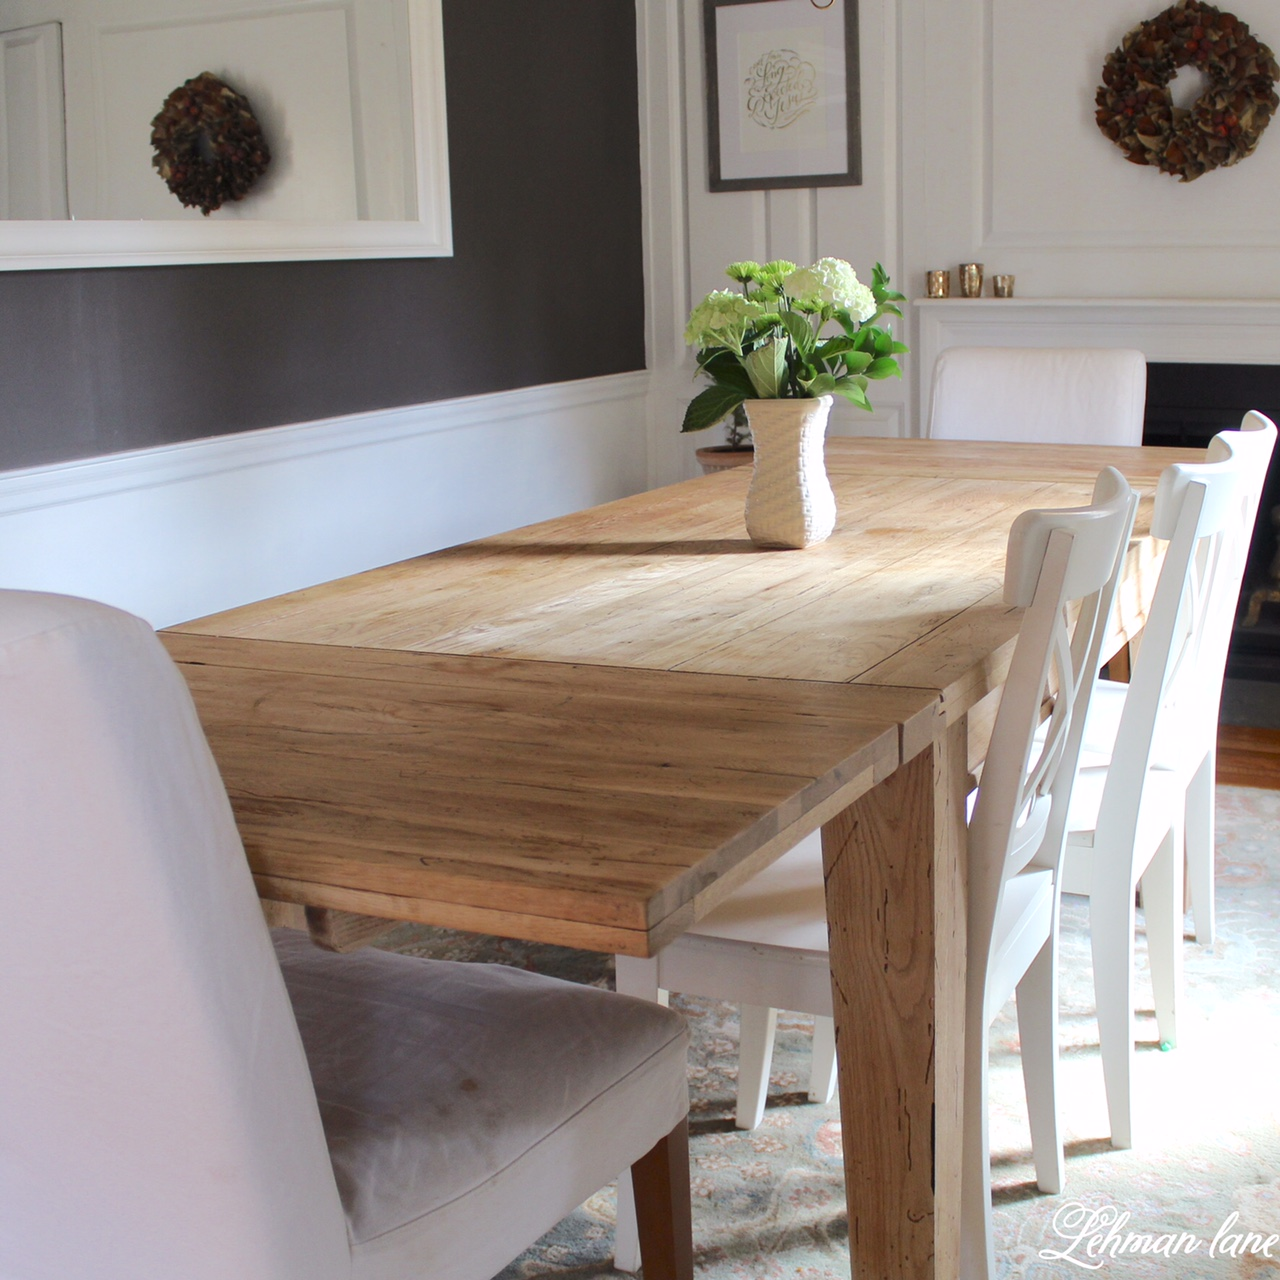 Diy Farmhouse Table Restoration Hardware Inspired